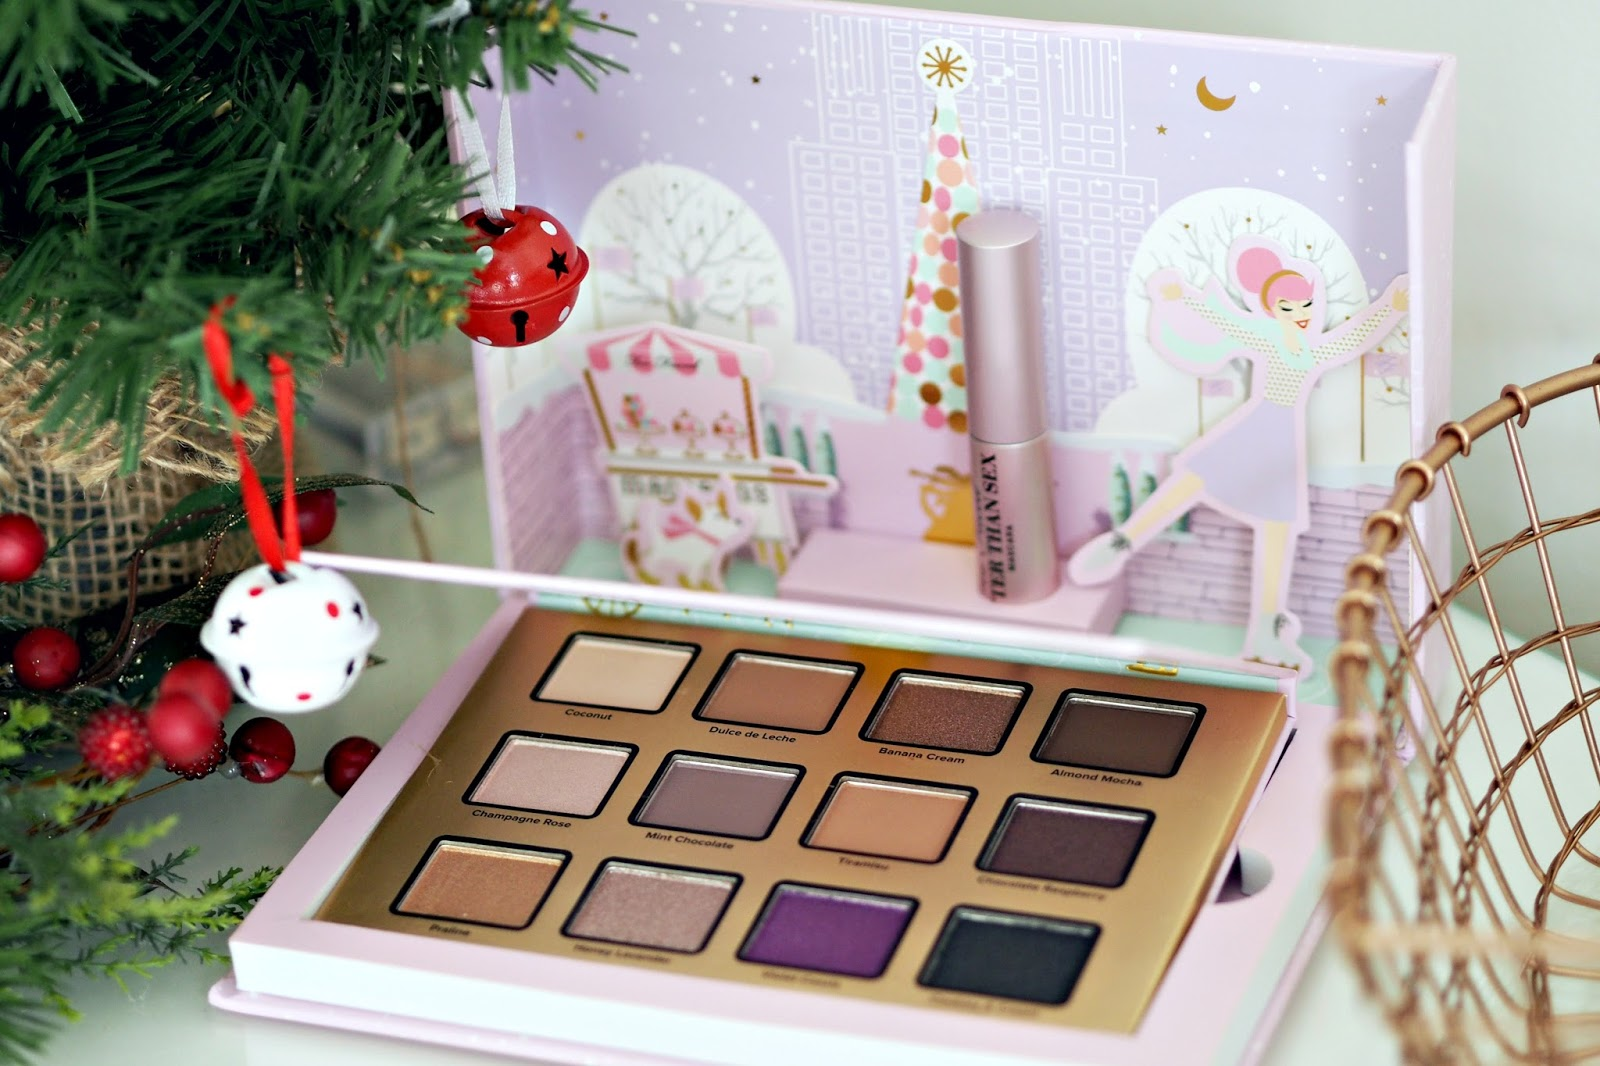 Too Faced 'Merry Macaroons' Christmas Gift Set